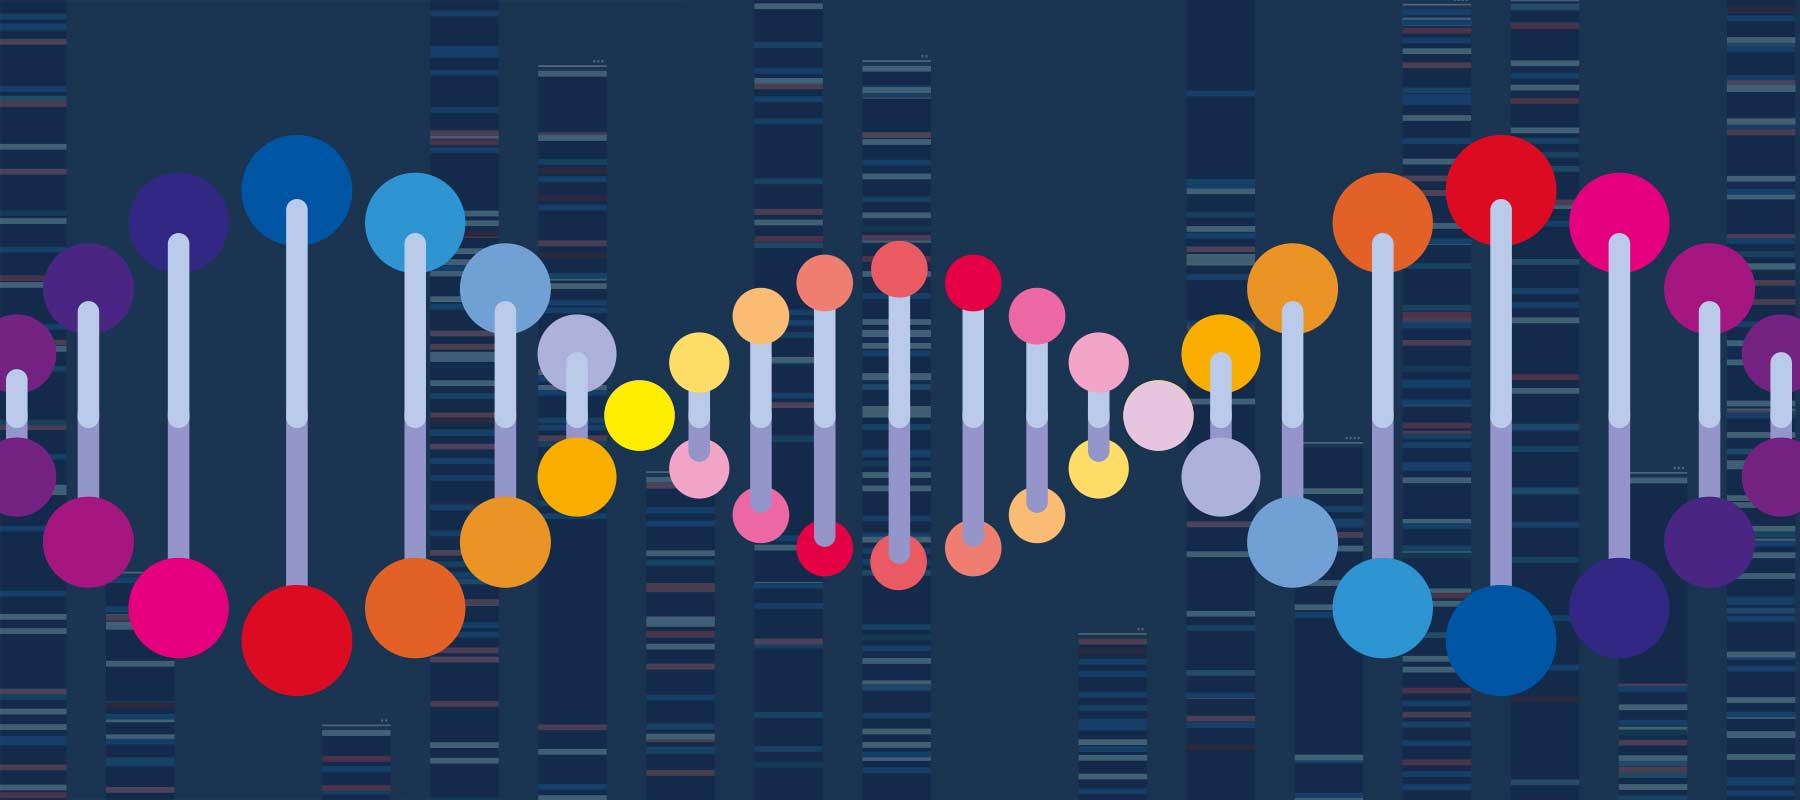 Image of DNA strand and code for article on DNA extraction methods.